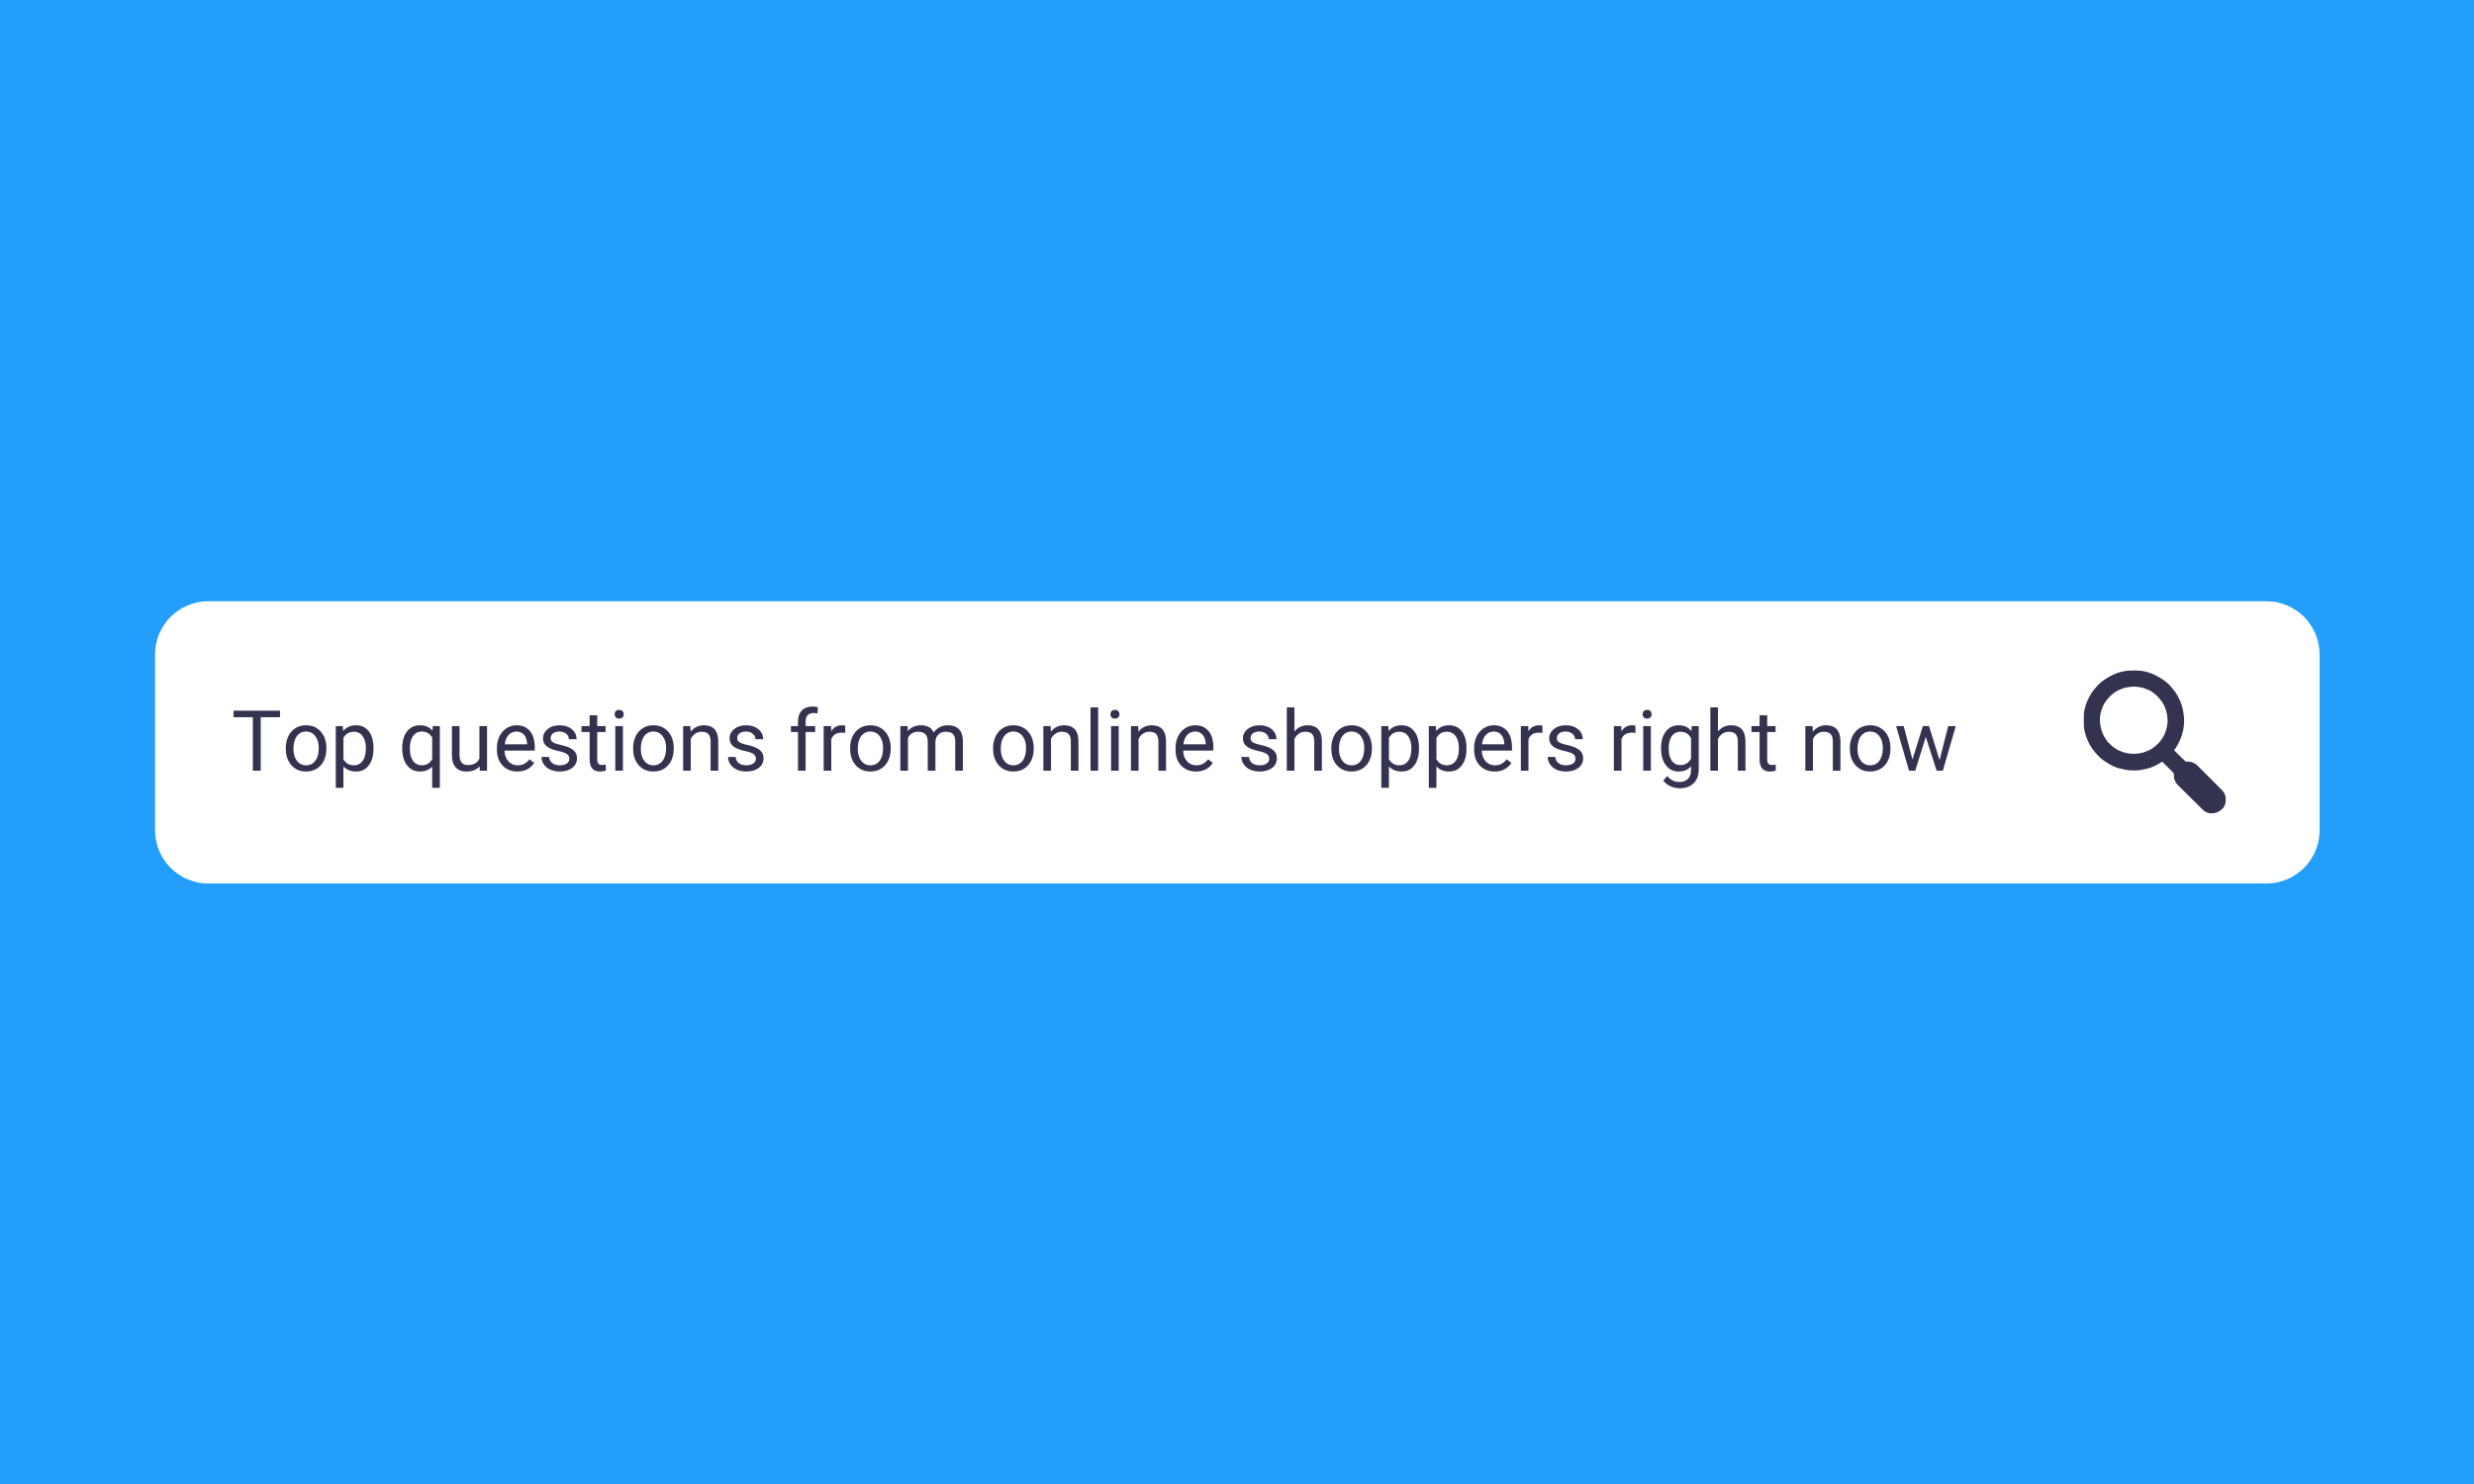 Top questions by online shoppers about the end of the lockdown